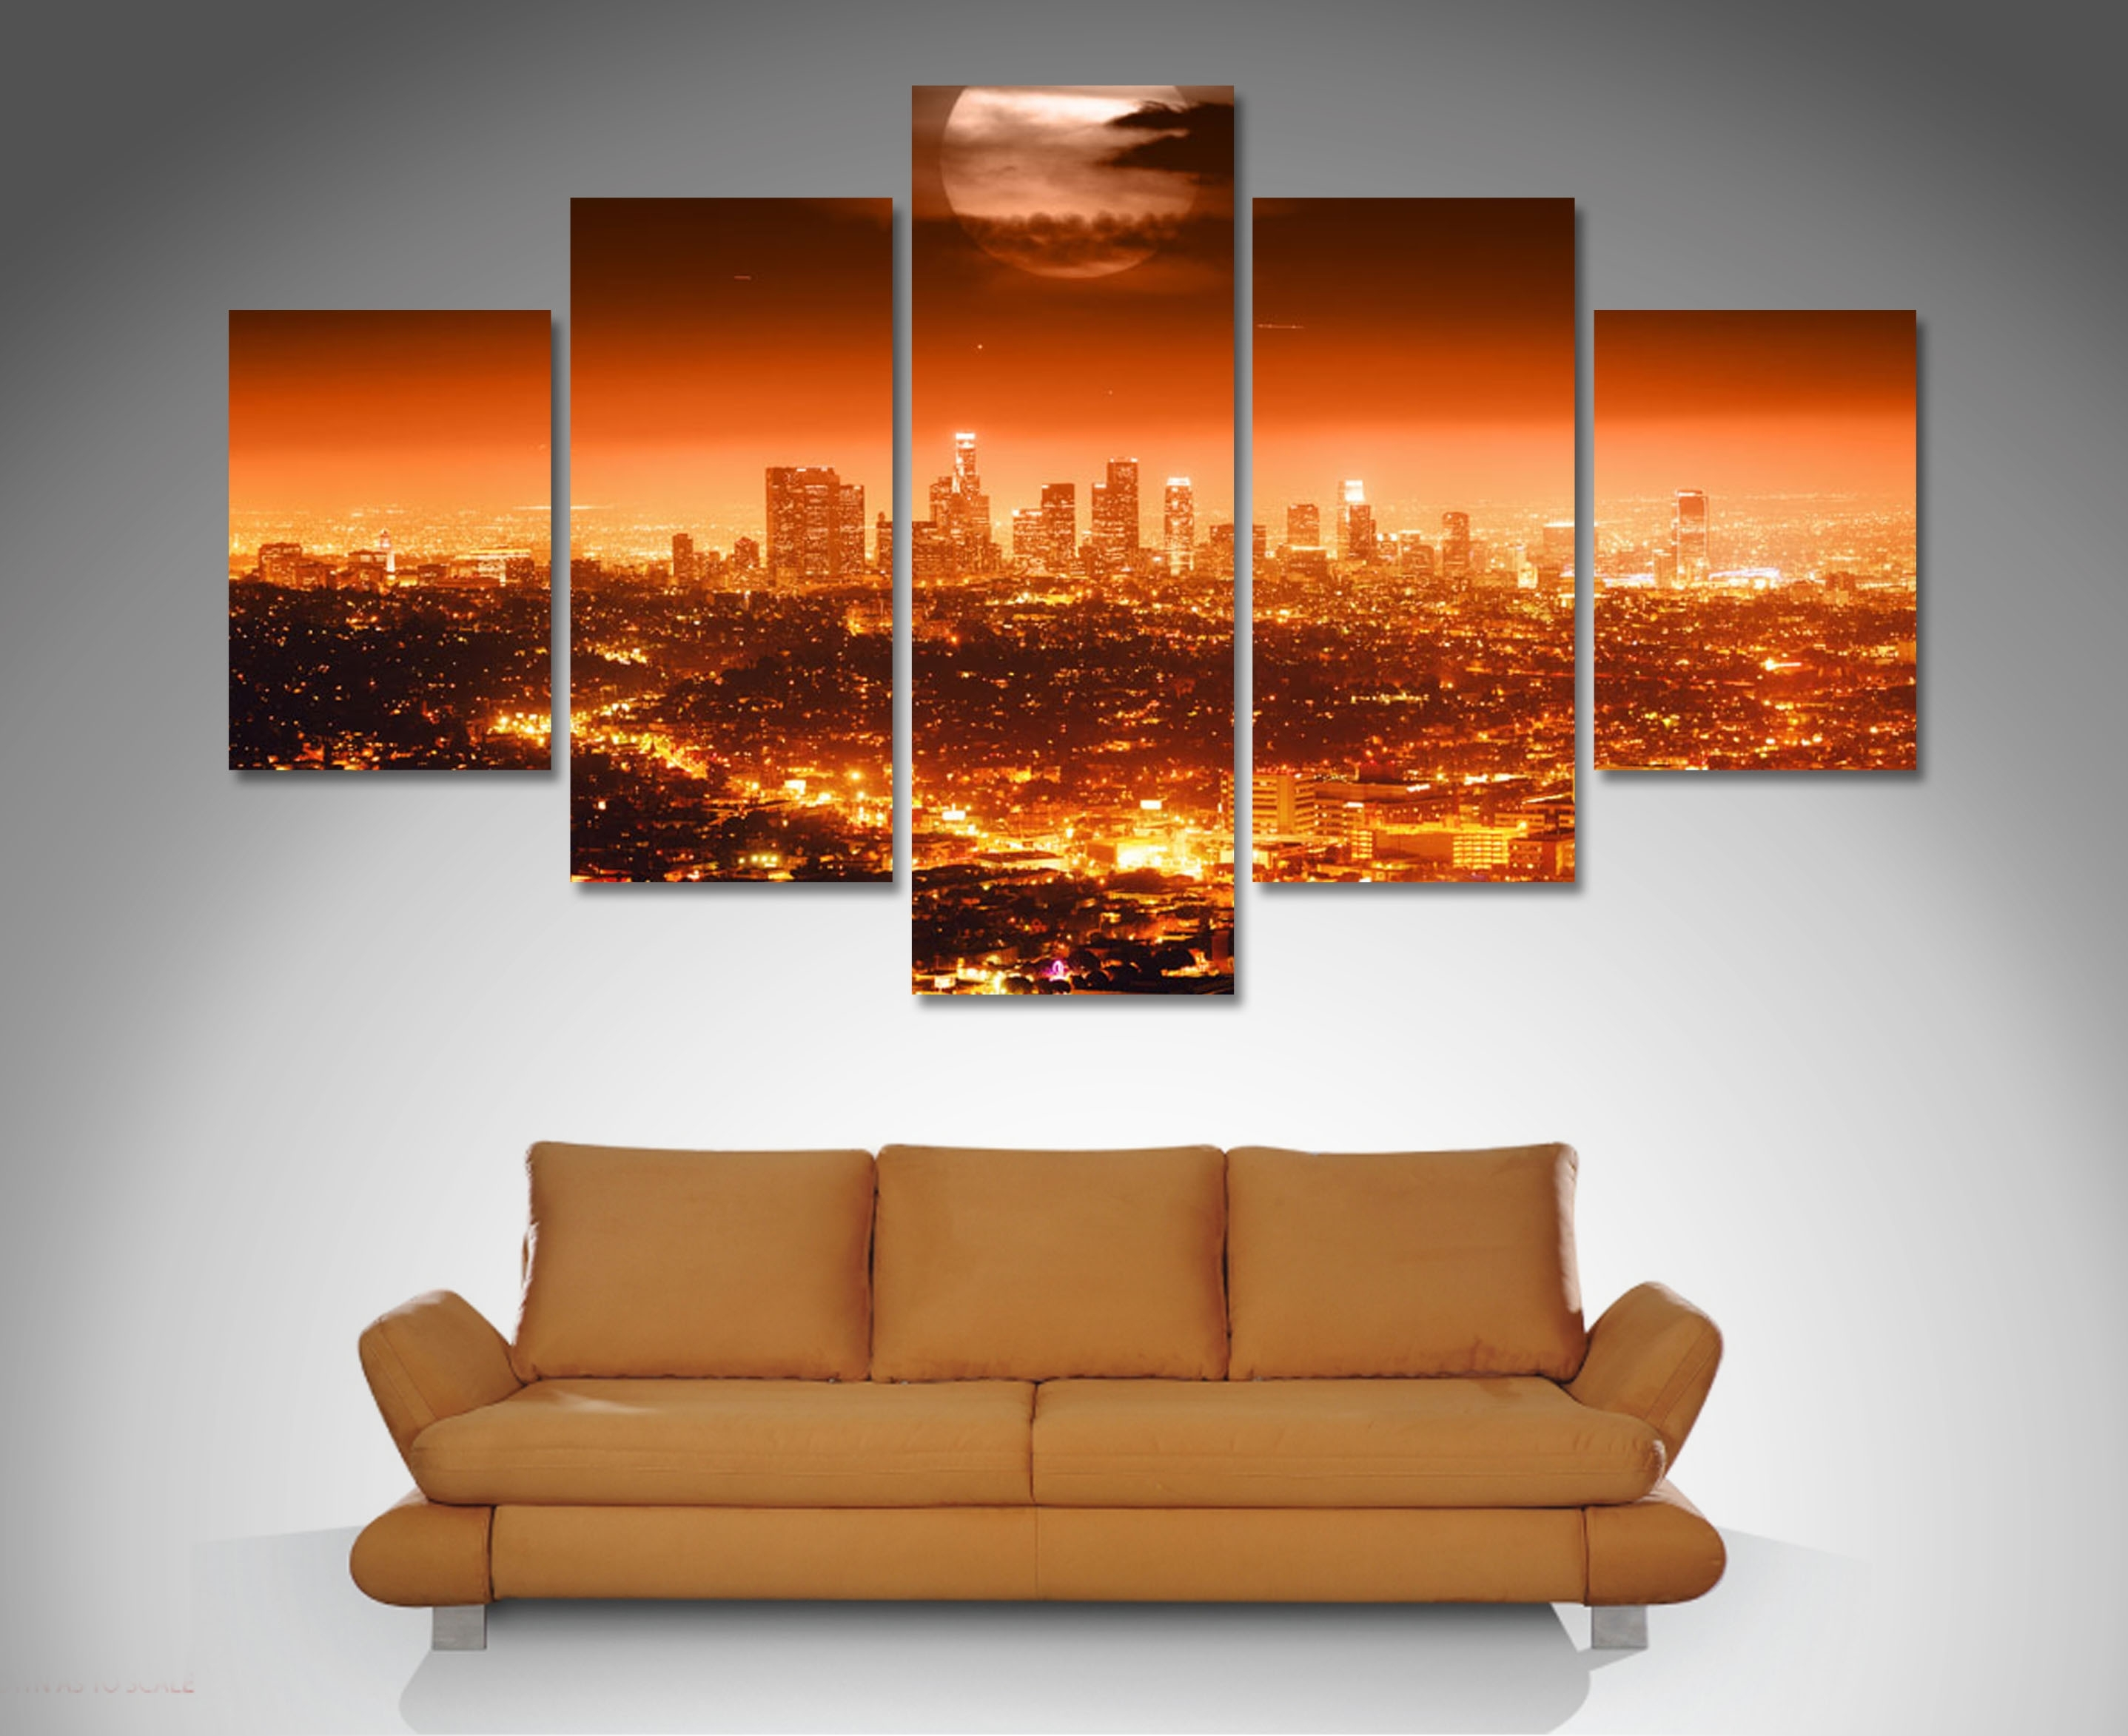 Los Angeles 5 Panel Diamond Shape Canvas Prints Http://www Intended For Newest Orange Canvas Wall Art (View 7 of 15)